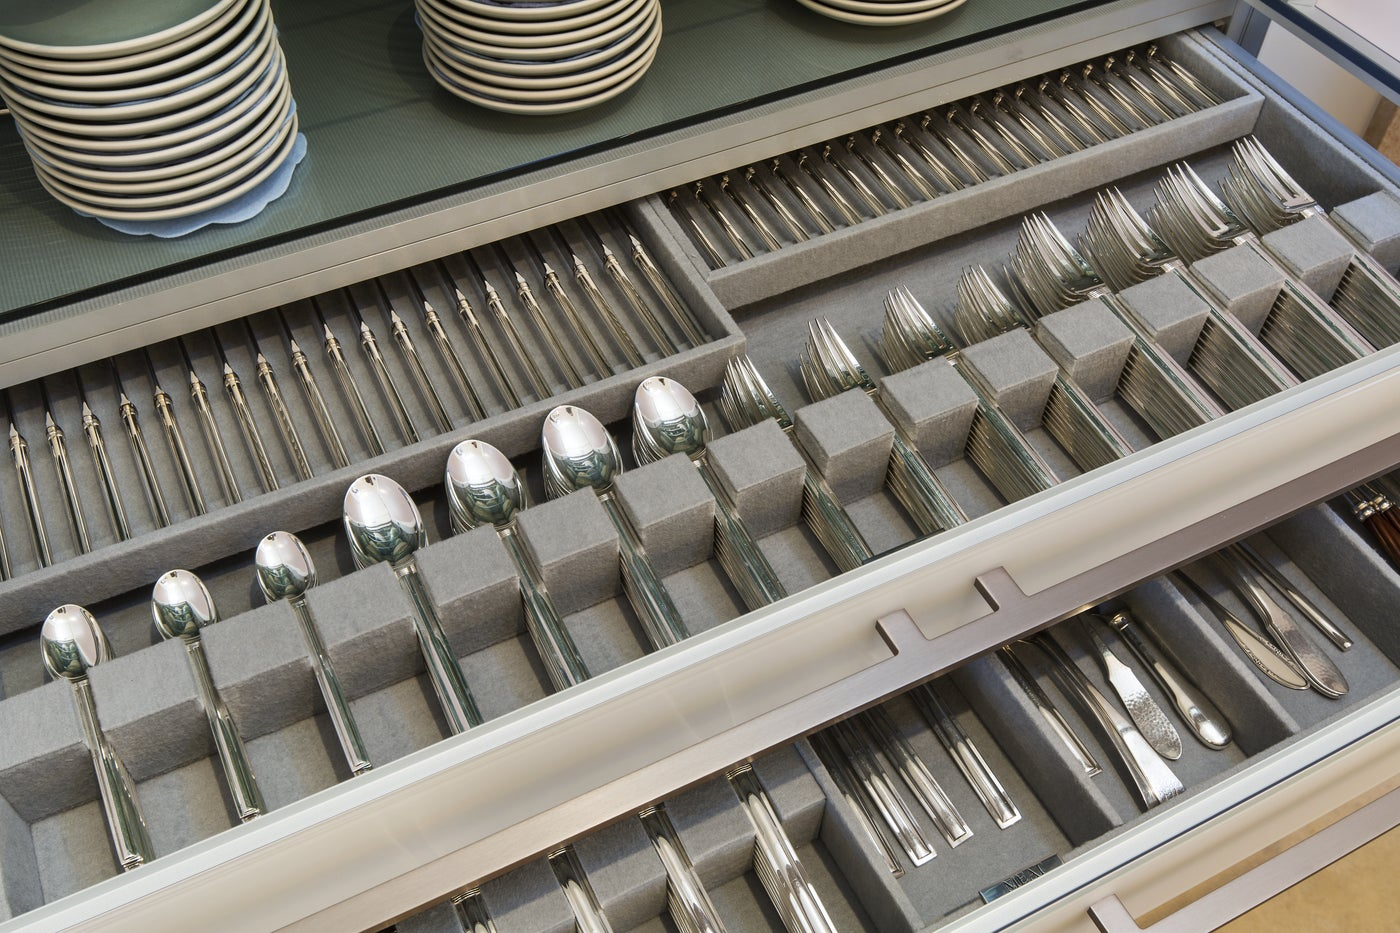 Sterling silver layered in drawers lined in chic fabrics.